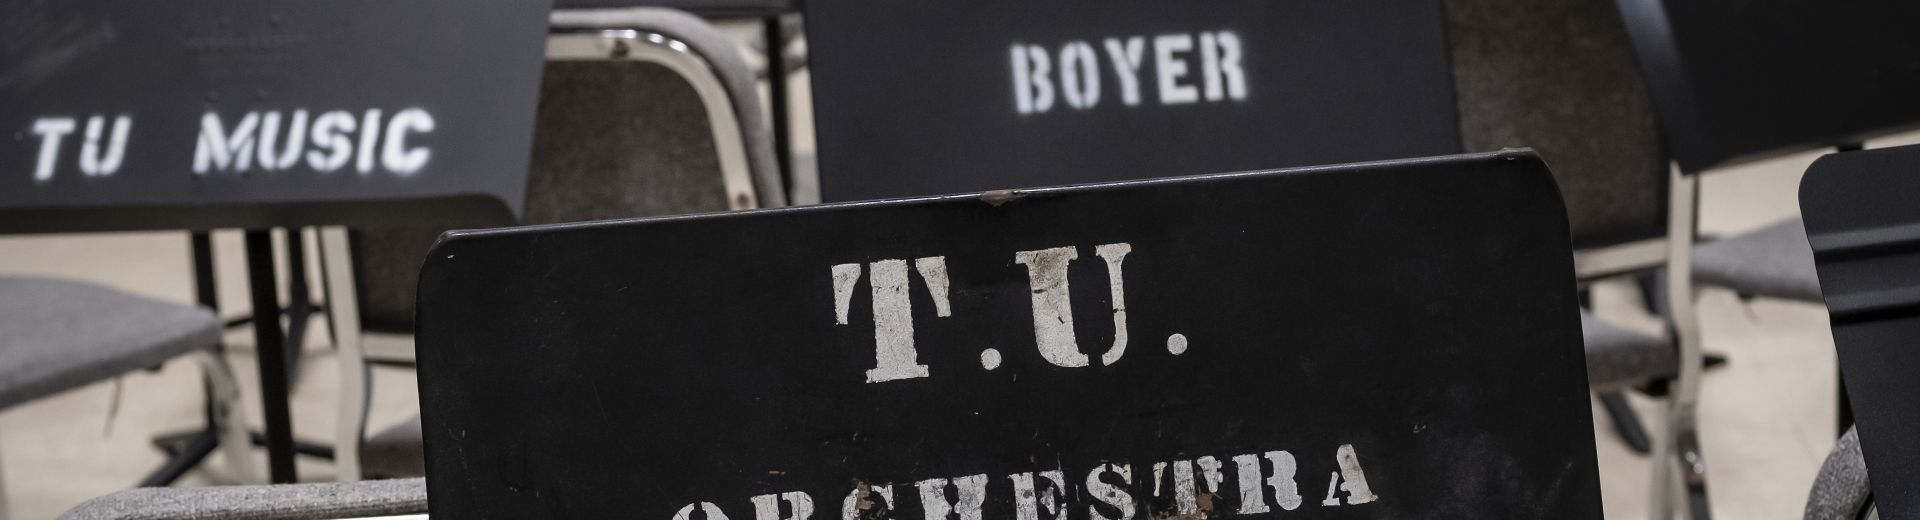 """Metal music stands stamped with the words """"TU Orchestra"""" """"Boyer"""" and """"TU Music"""""""